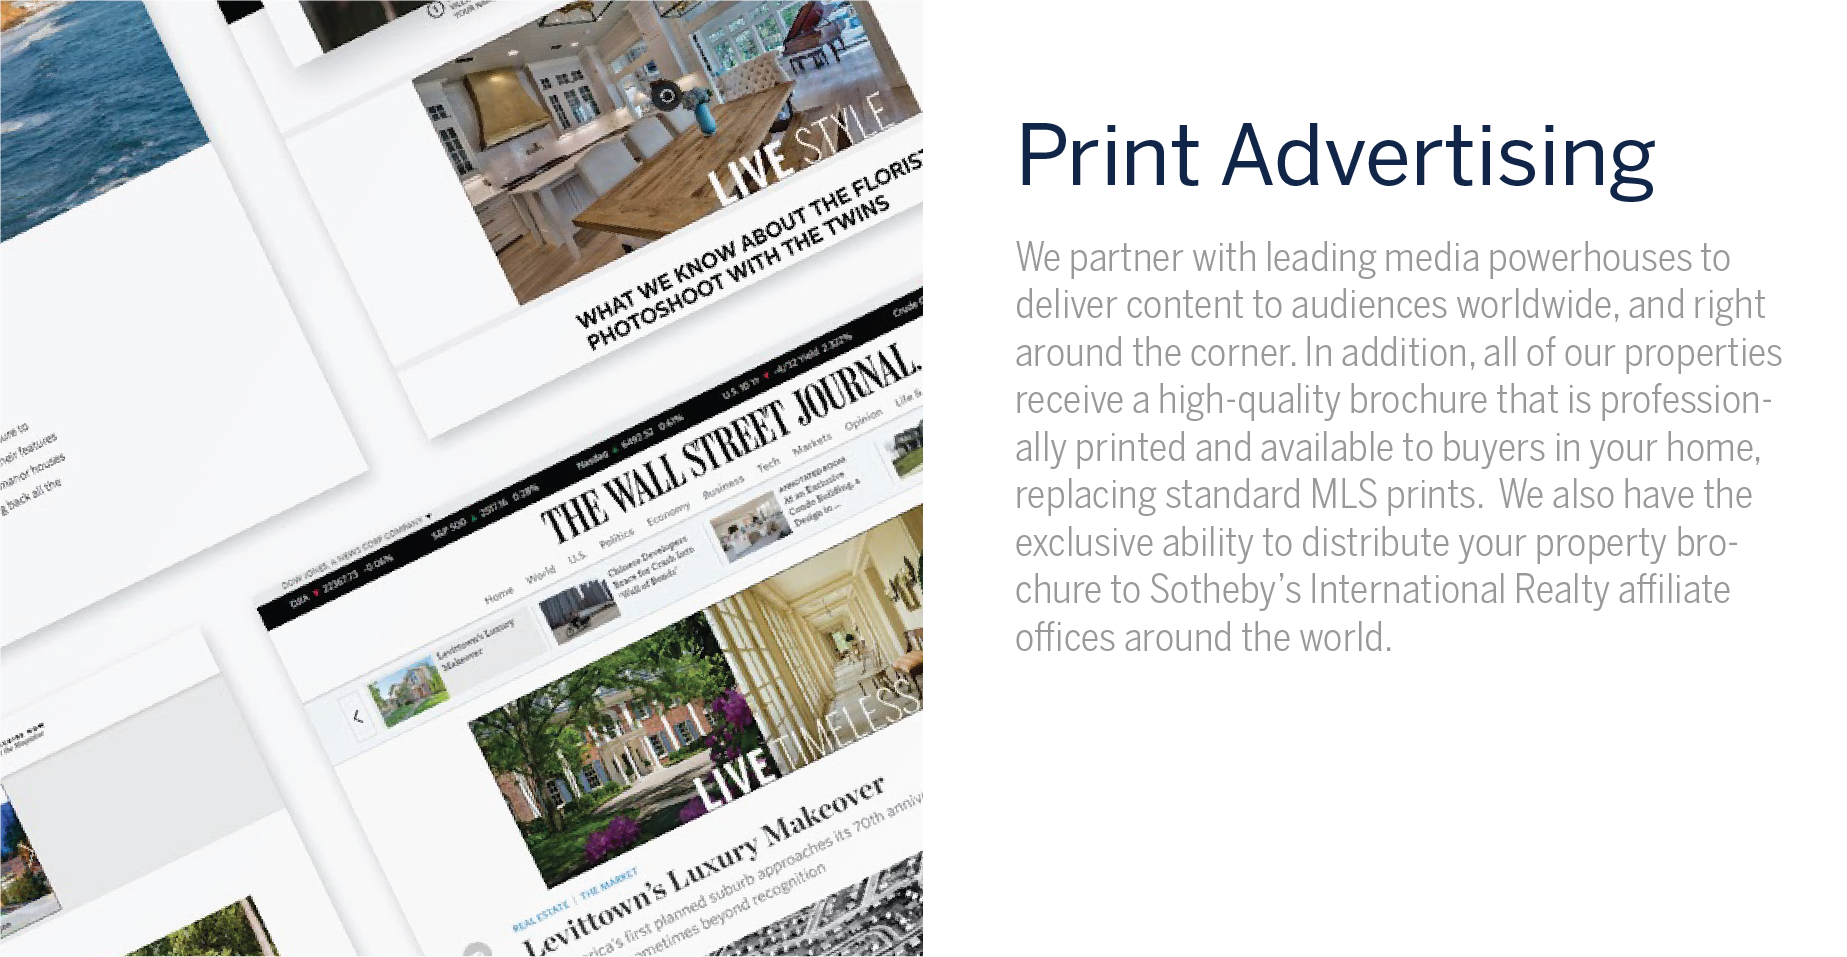 Printing Advertising - We partner with leading media powerhouses to deliver content to discerning audiences worldwide. Our partners' cutting-edge innovation, strategic positioning and international impact enable the Sotheby's International Realty Brand to successfully connect with global consumers. We also run advertisements in many of the local publications that fit our clients' demographics so that our name is spread around the world, and right next door. We know that high frequency presence and consistent branding across all of our media outlets is important to marketing our listing inventory and attracting qualified buyers. In addition, all of our properties receive a high quality print brochure that is professionally printed. These replace the standard MLS printouts that will be handed out to everyone that views your home. We also have the ability to distribute your property brochure to Sotheby's International Realty affiliate offices around the world.